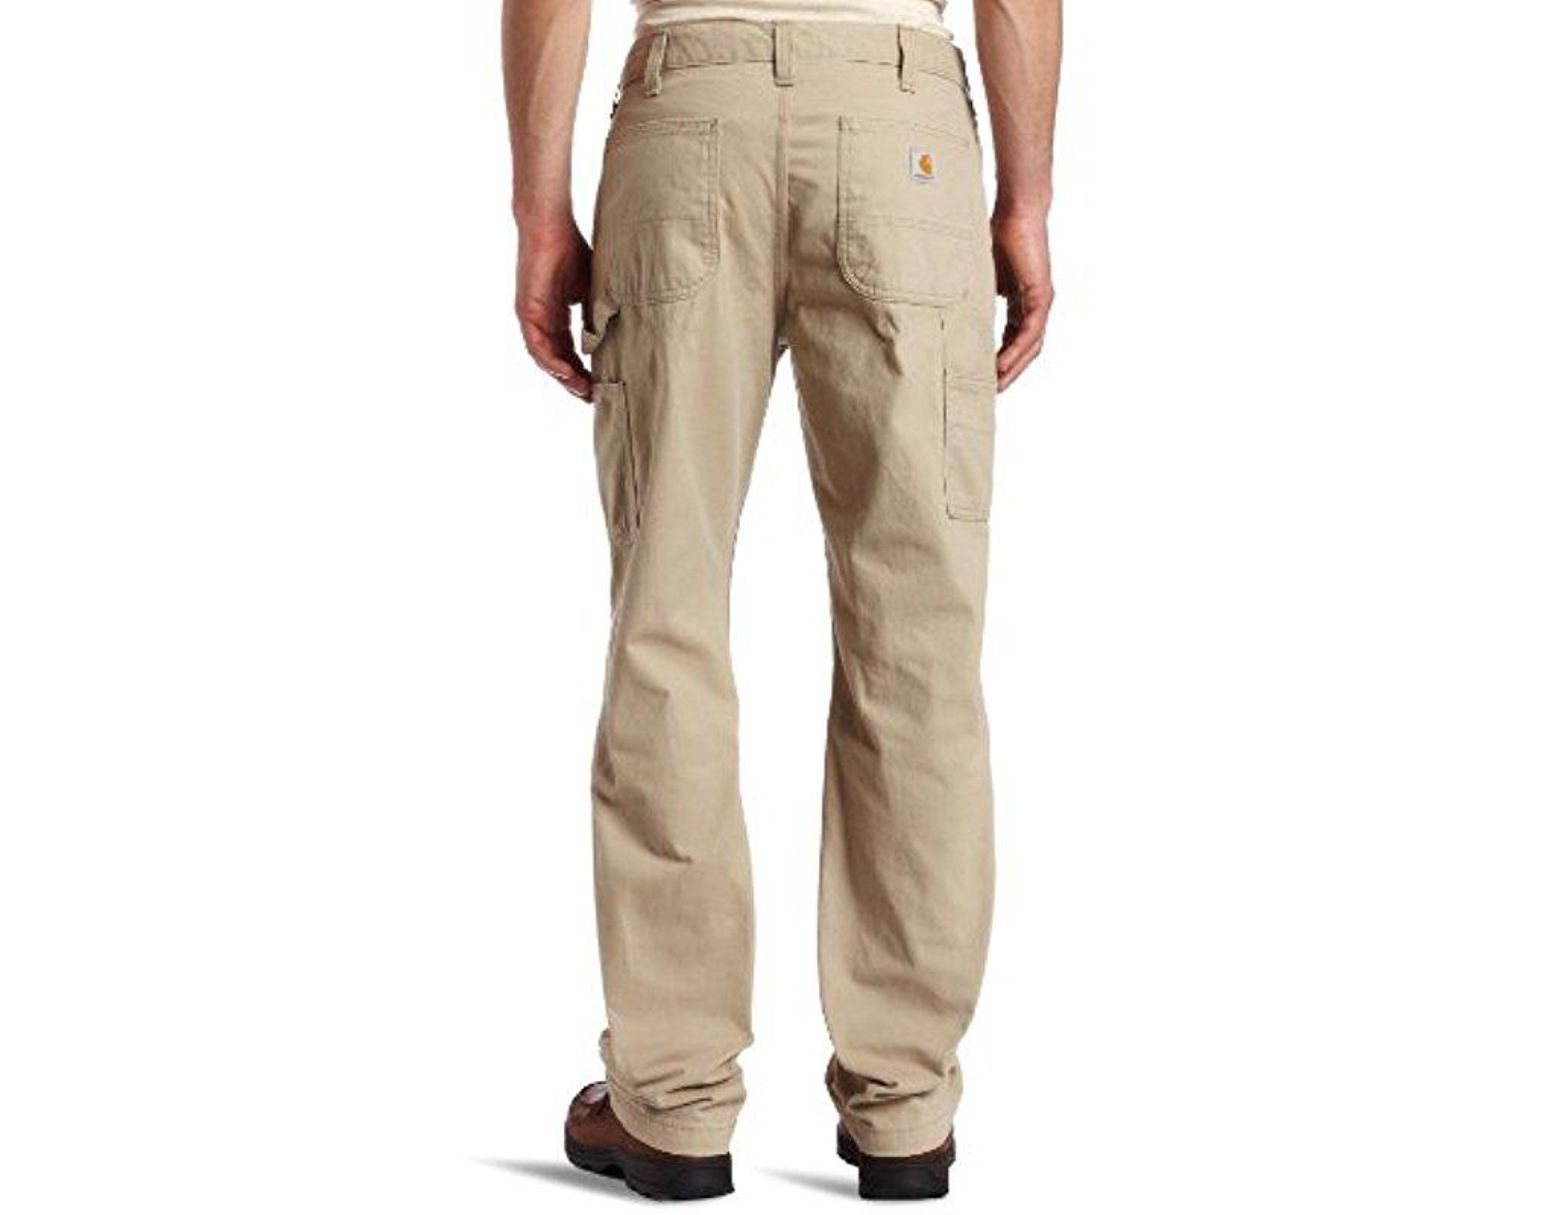 1d69c1e11ad Lyst - Carhartt Relaxed-fit Washed Twill Dungaree Pant in Natural for Men -  Save 10%